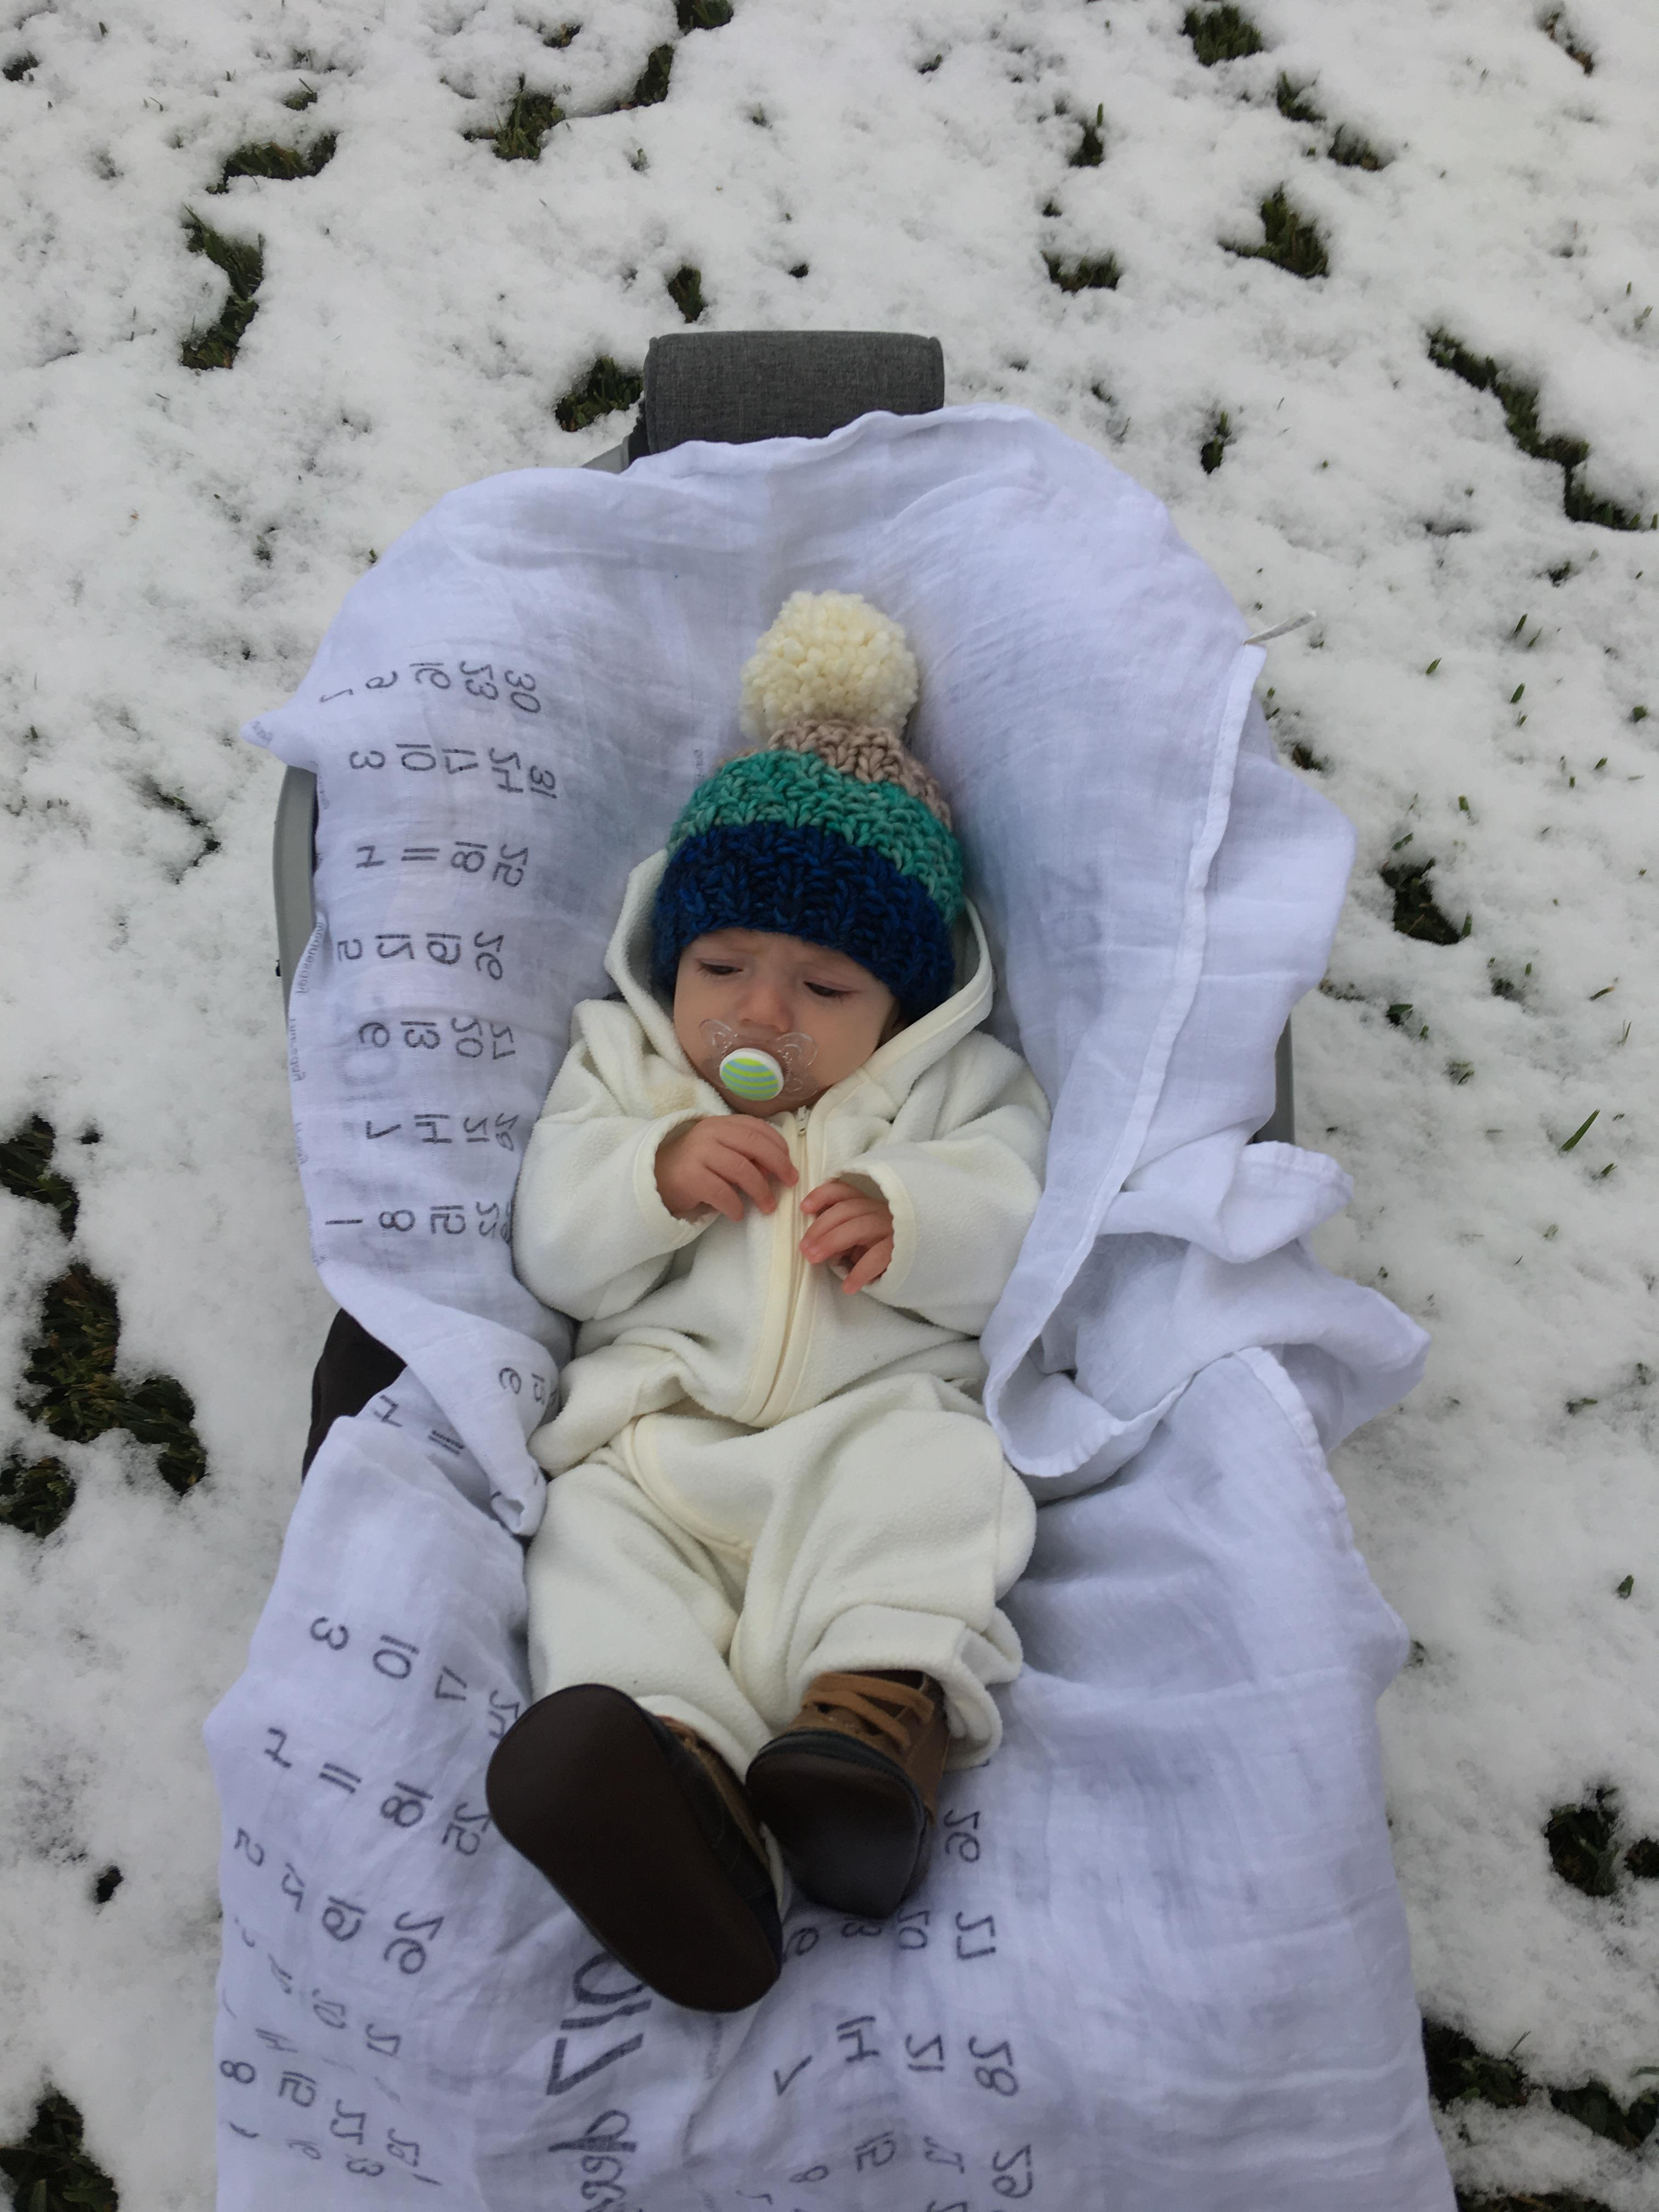 <div class='meta'><div class='origin-logo' data-origin='none'></div><span class='caption-text' data-credit=''>From Harvey baby to snow baby, Michael enjoys his first snowfall</span></div>